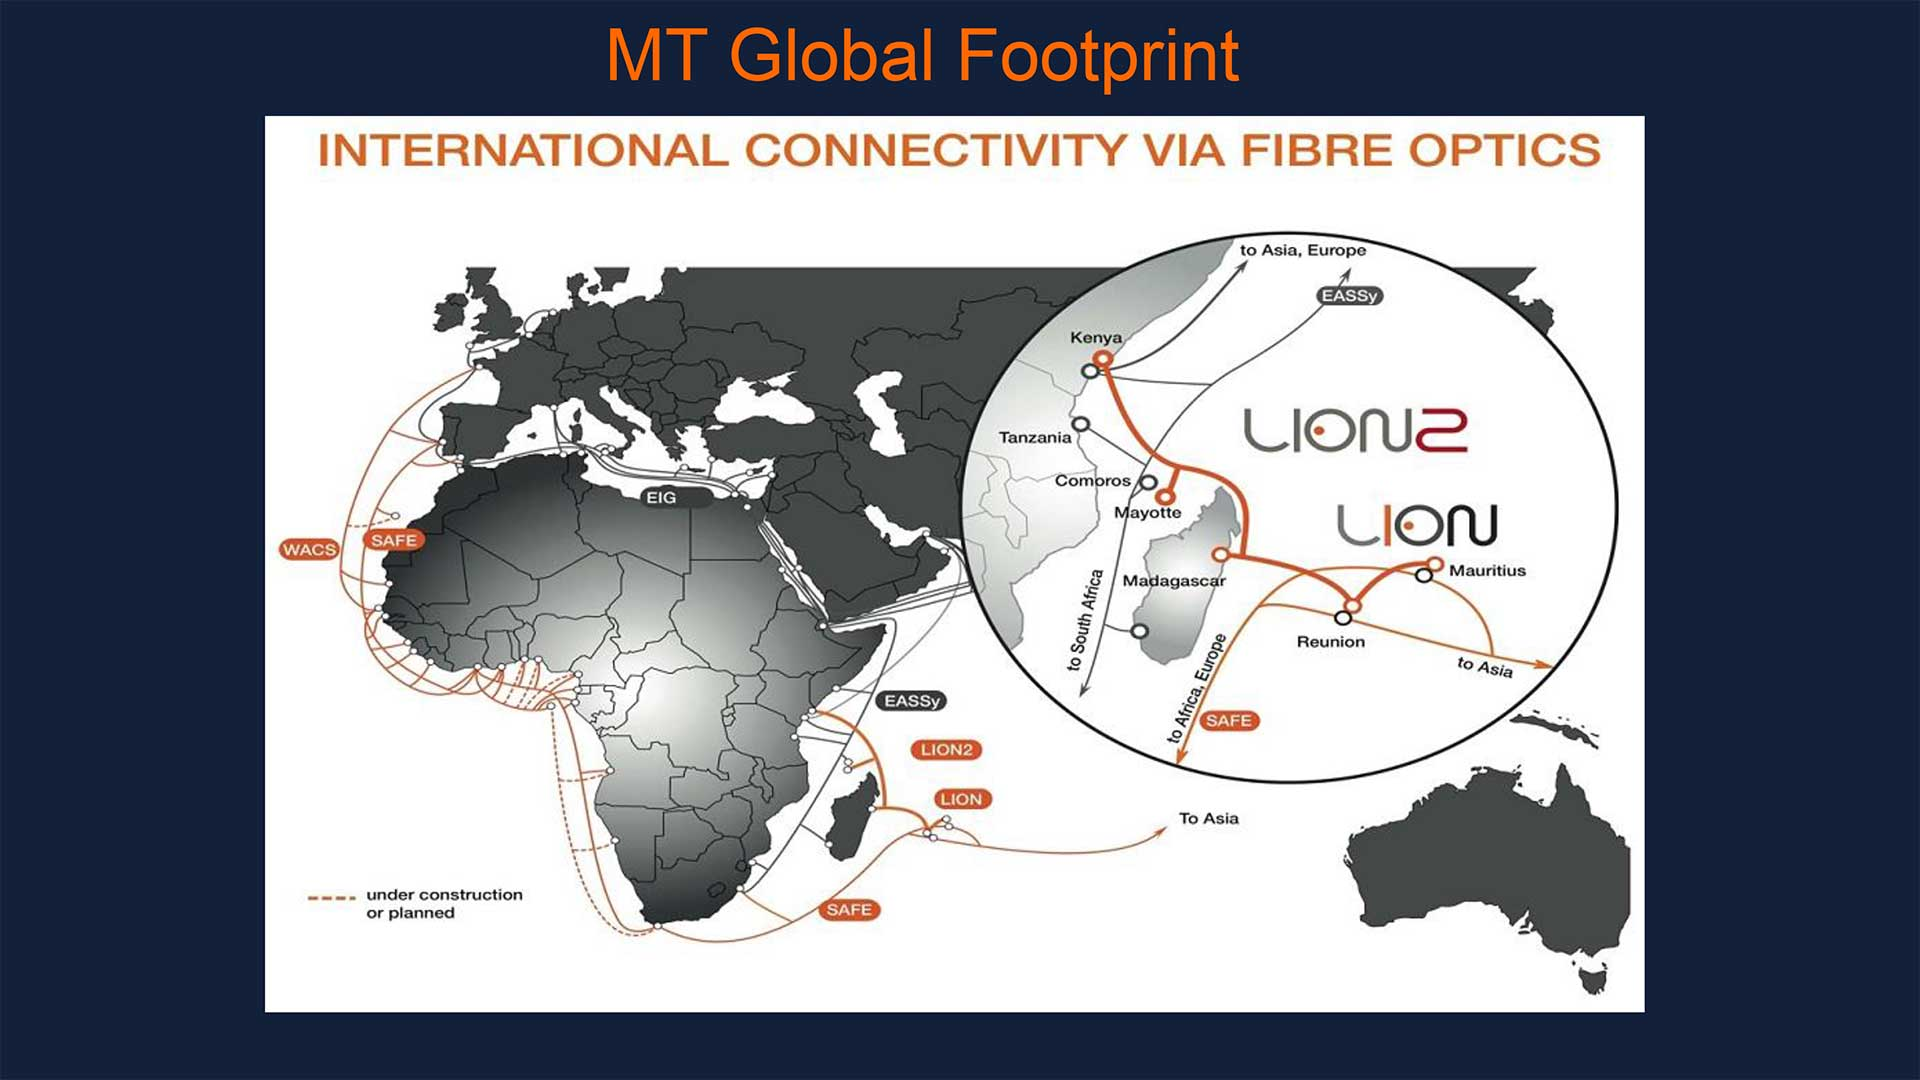 MT Global Footprint